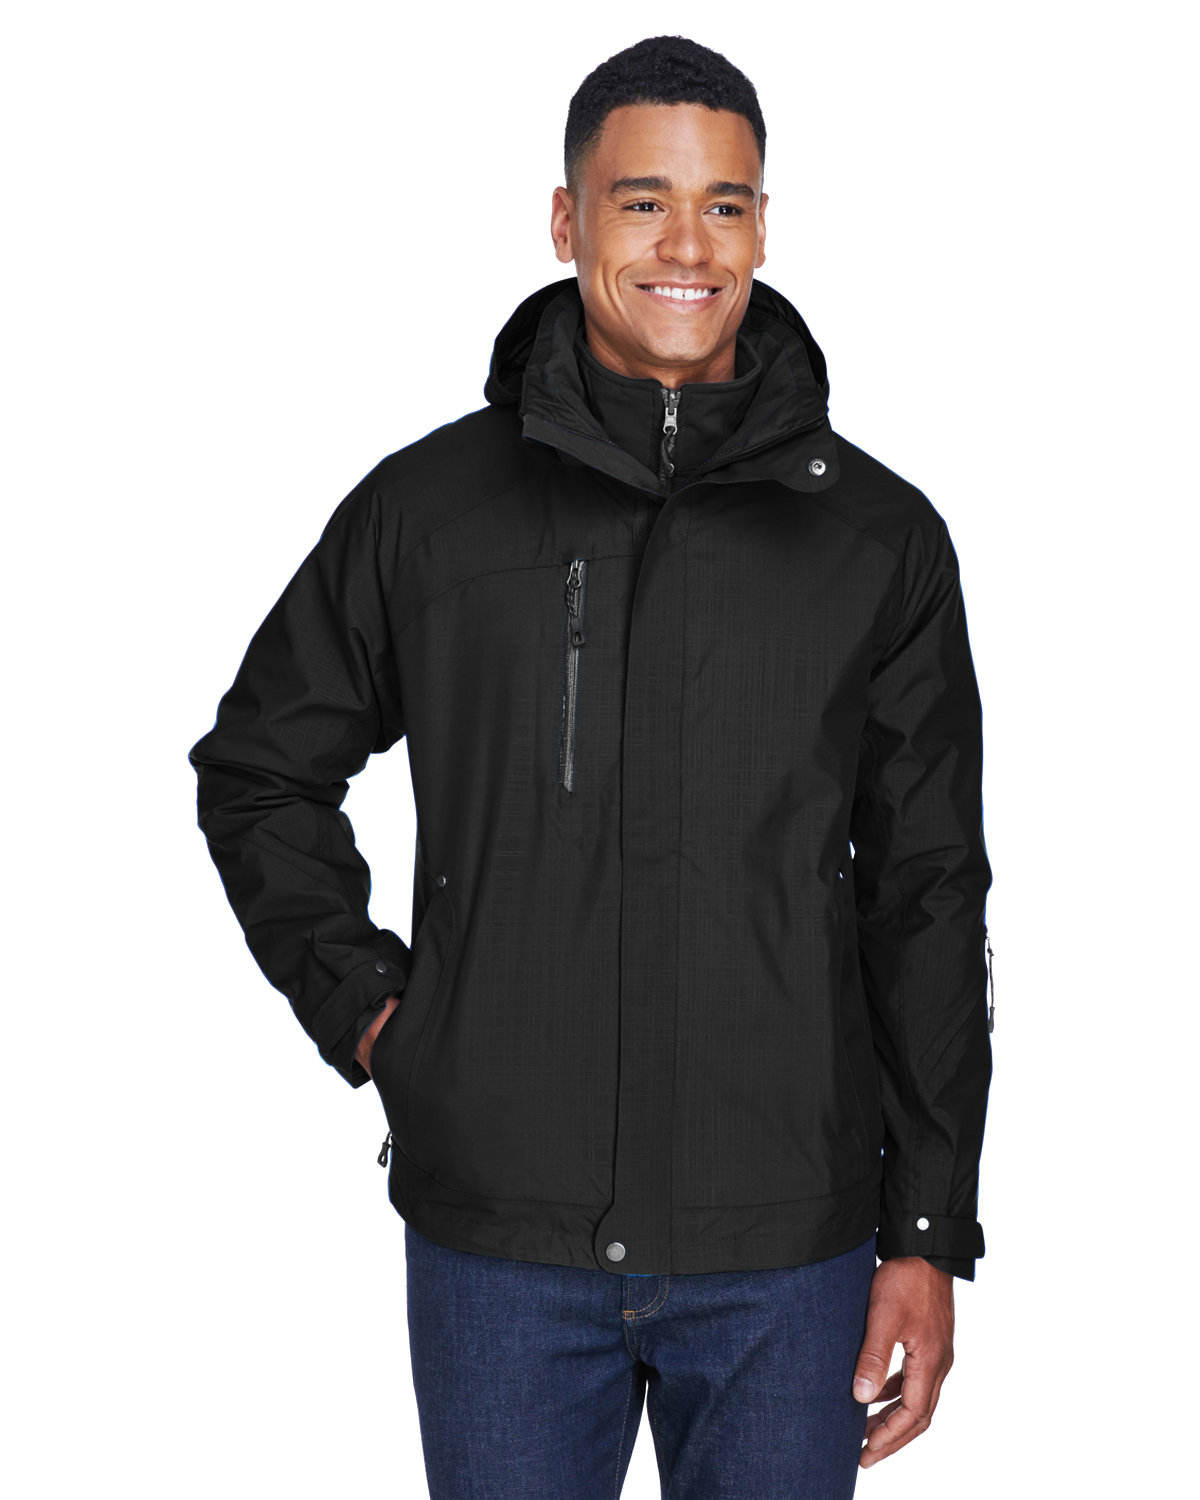 North End Men's Caprice 3-in-1 Jacket with Soft Shell Liner BLACK